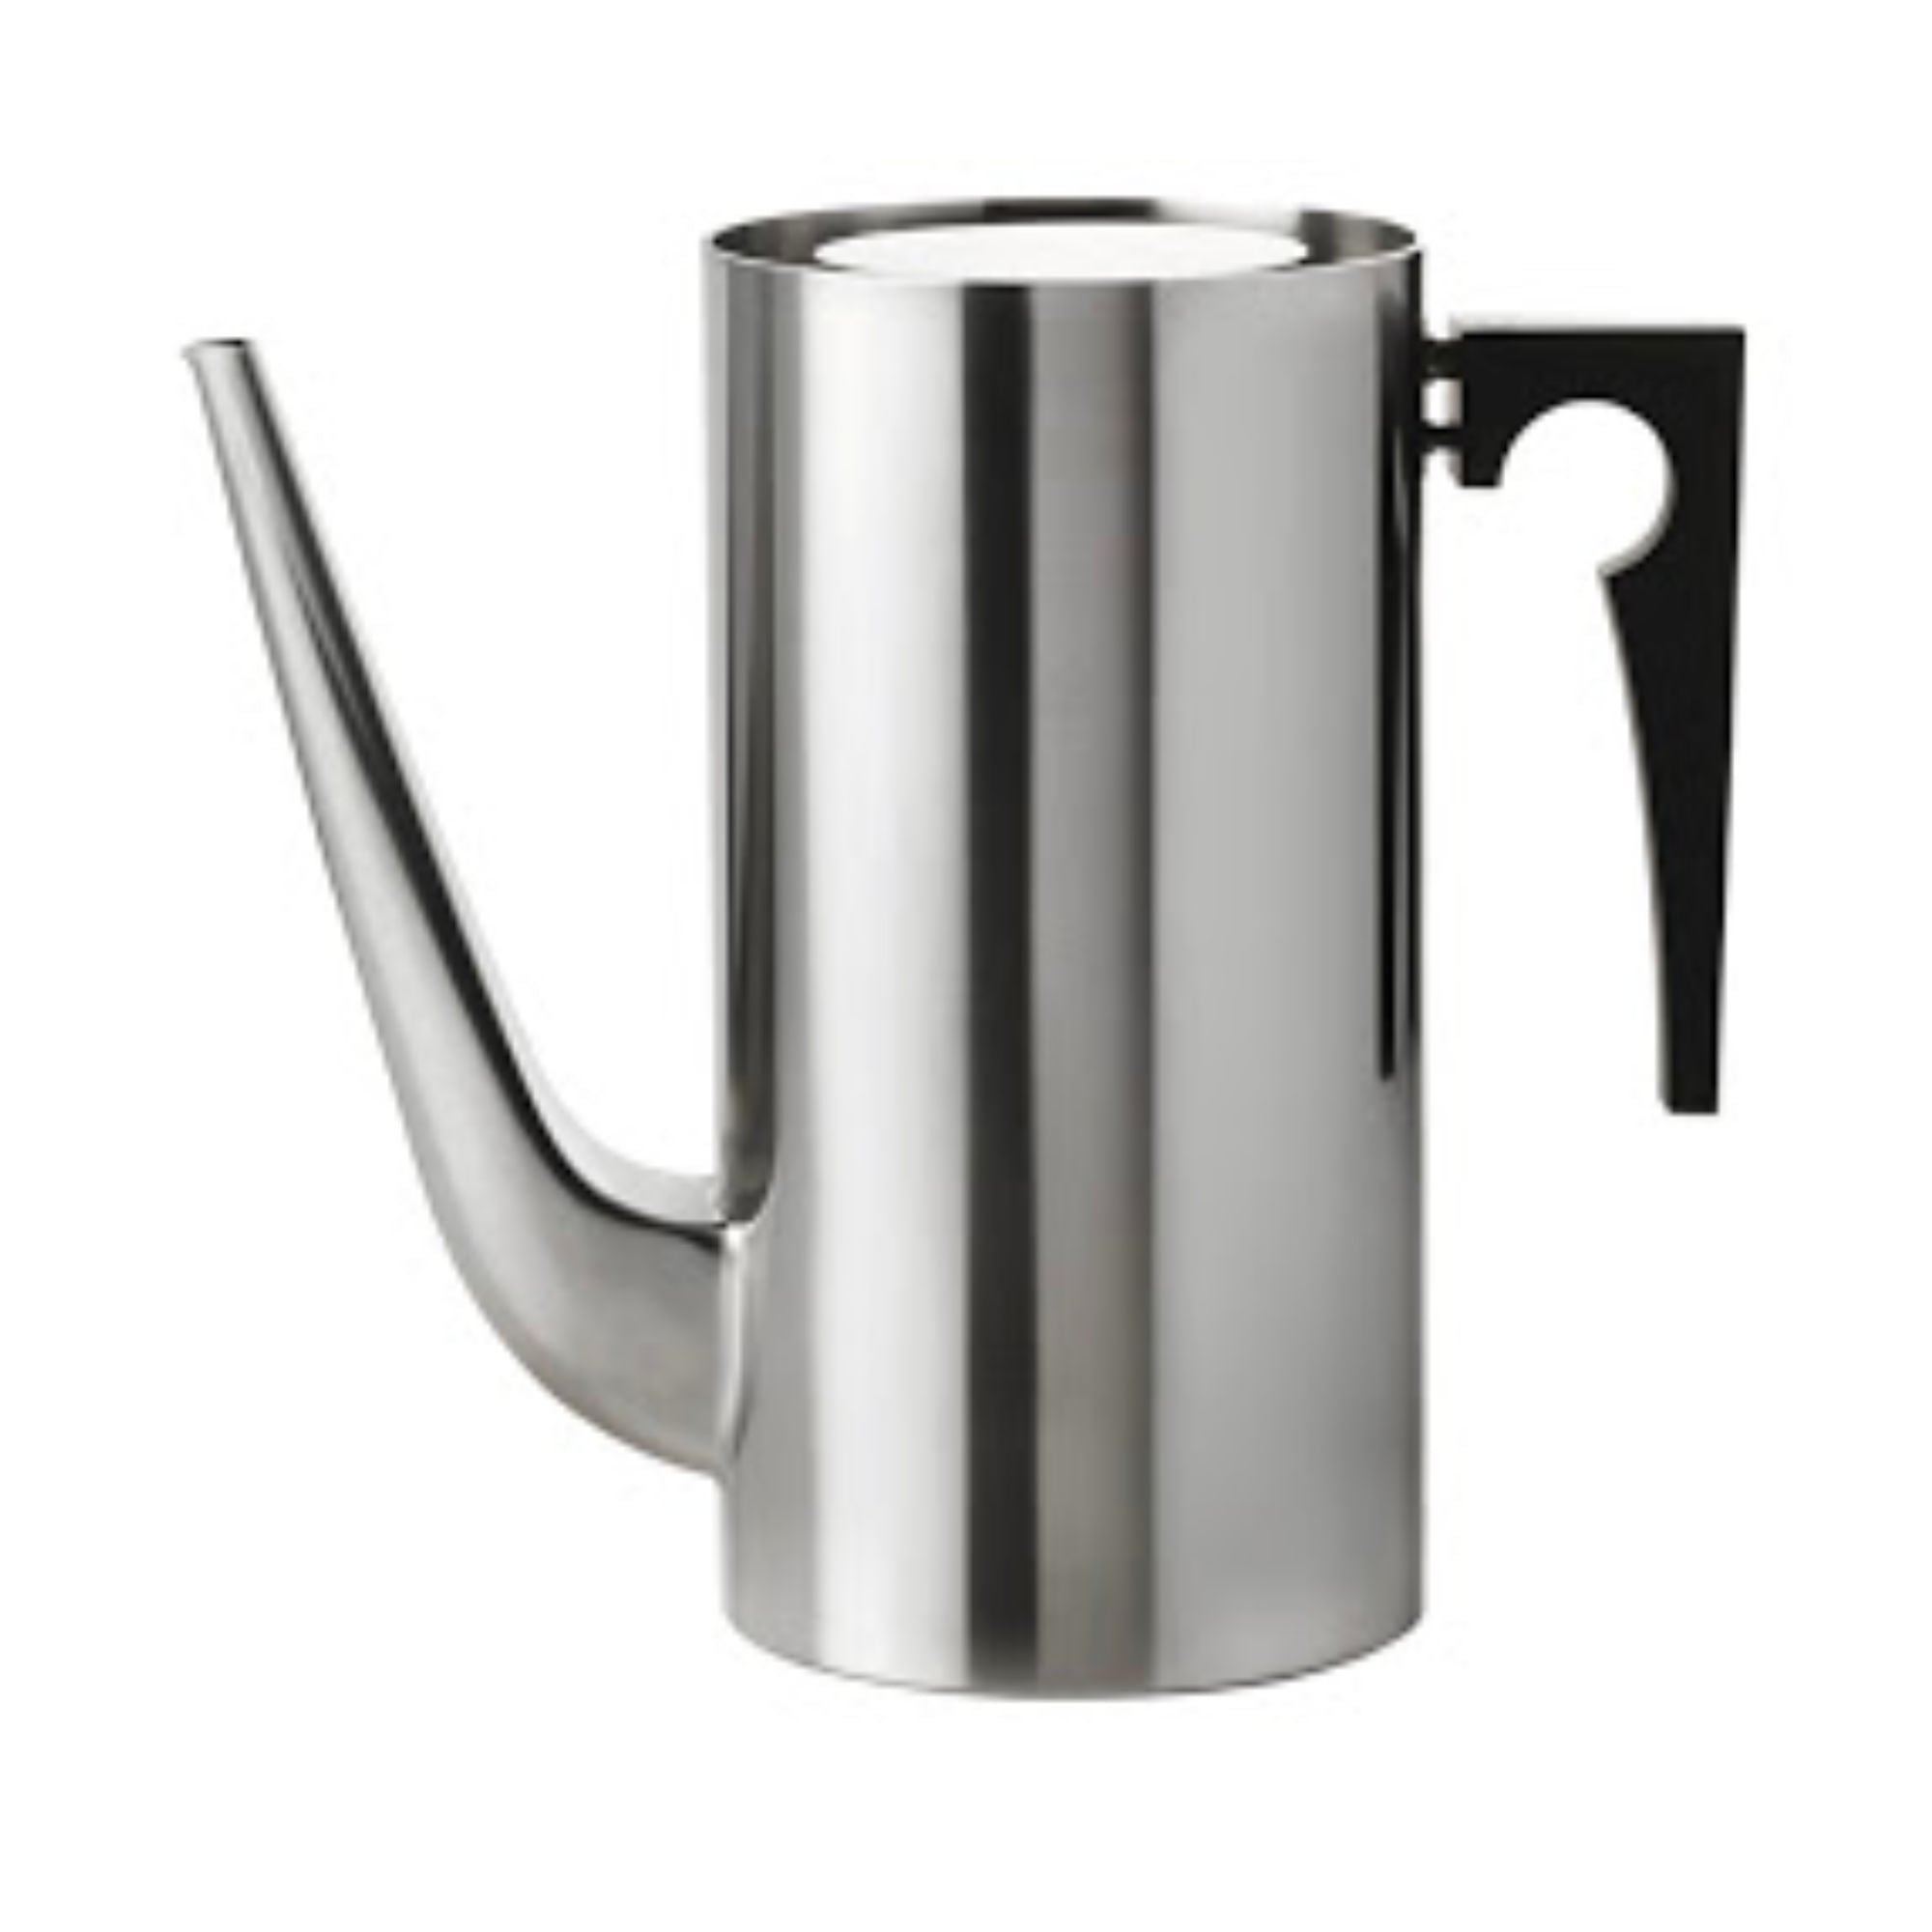 Stelton Arne Jacobsen Coffee Pot 1.5L